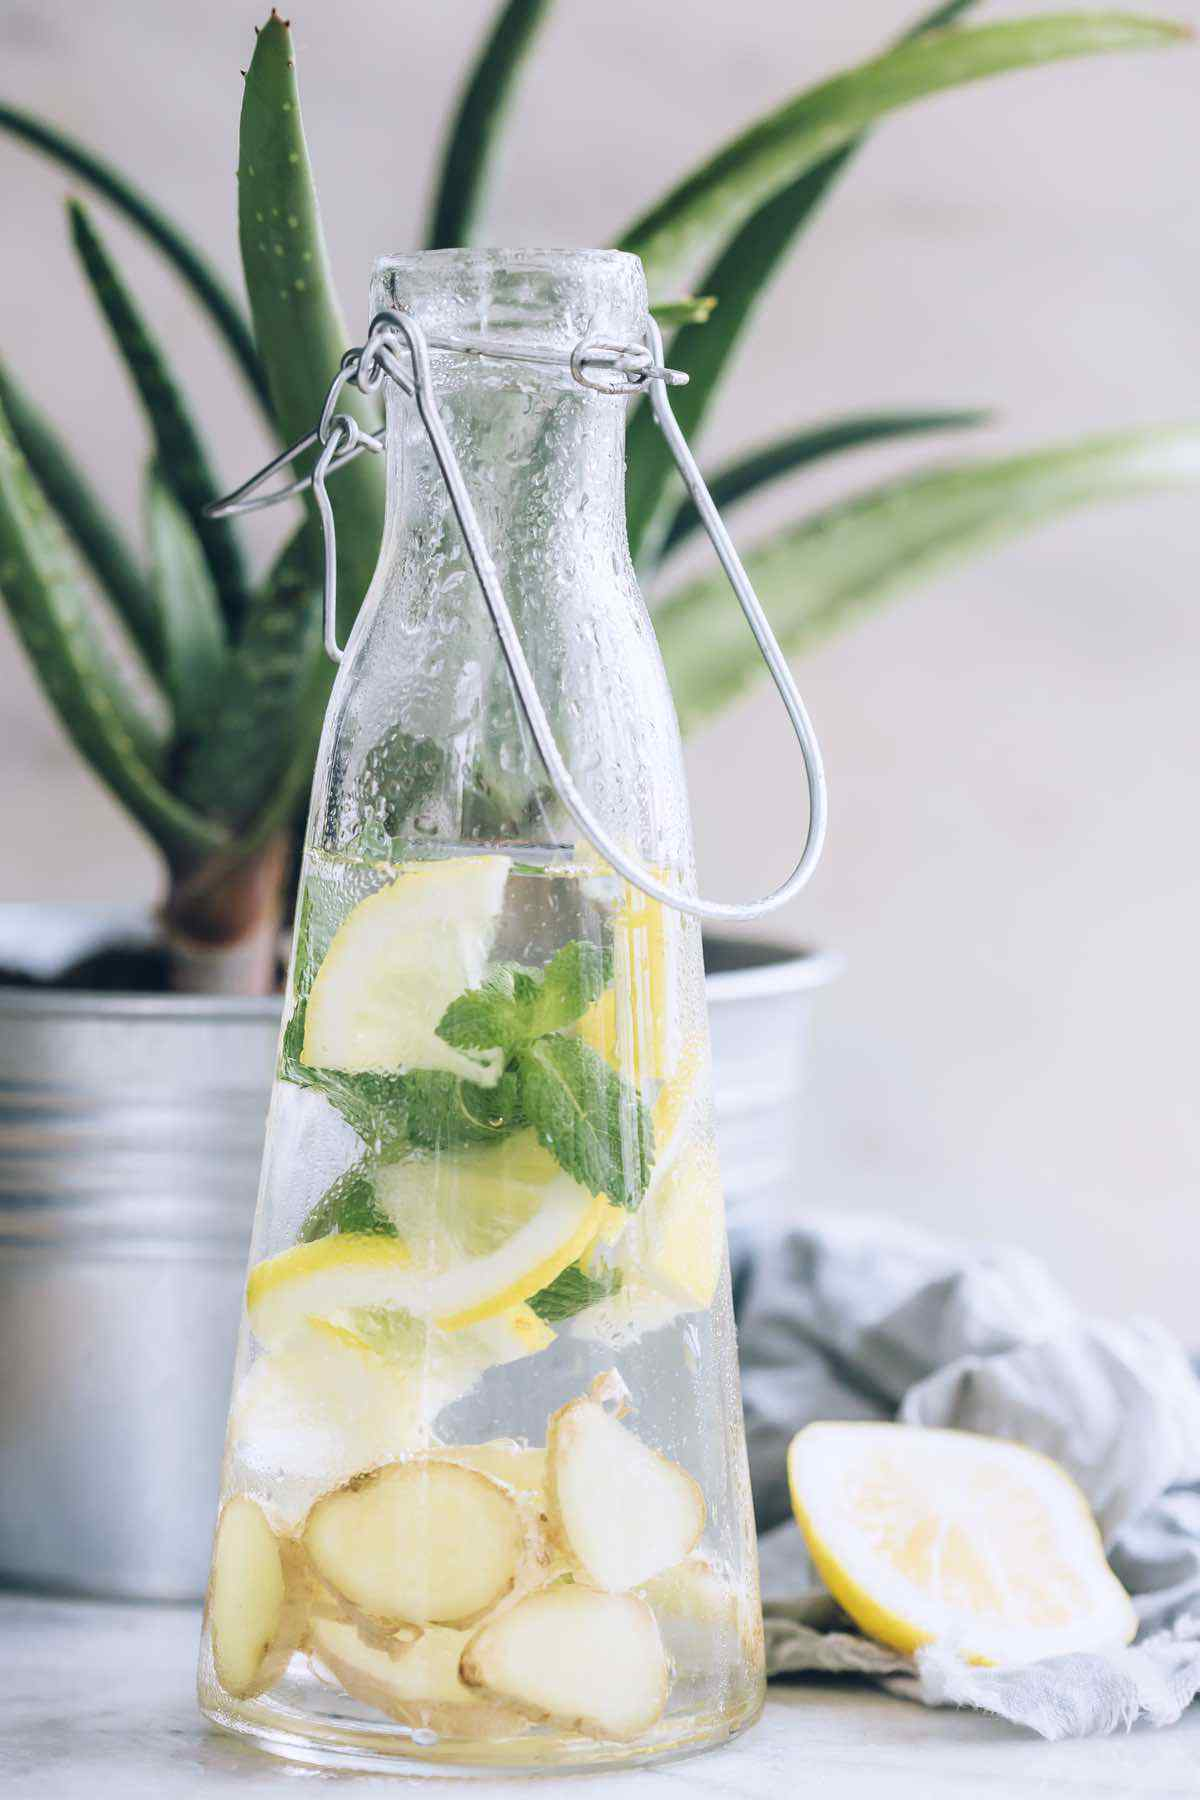 Infused Water to Help Relieve Stomach Cramps